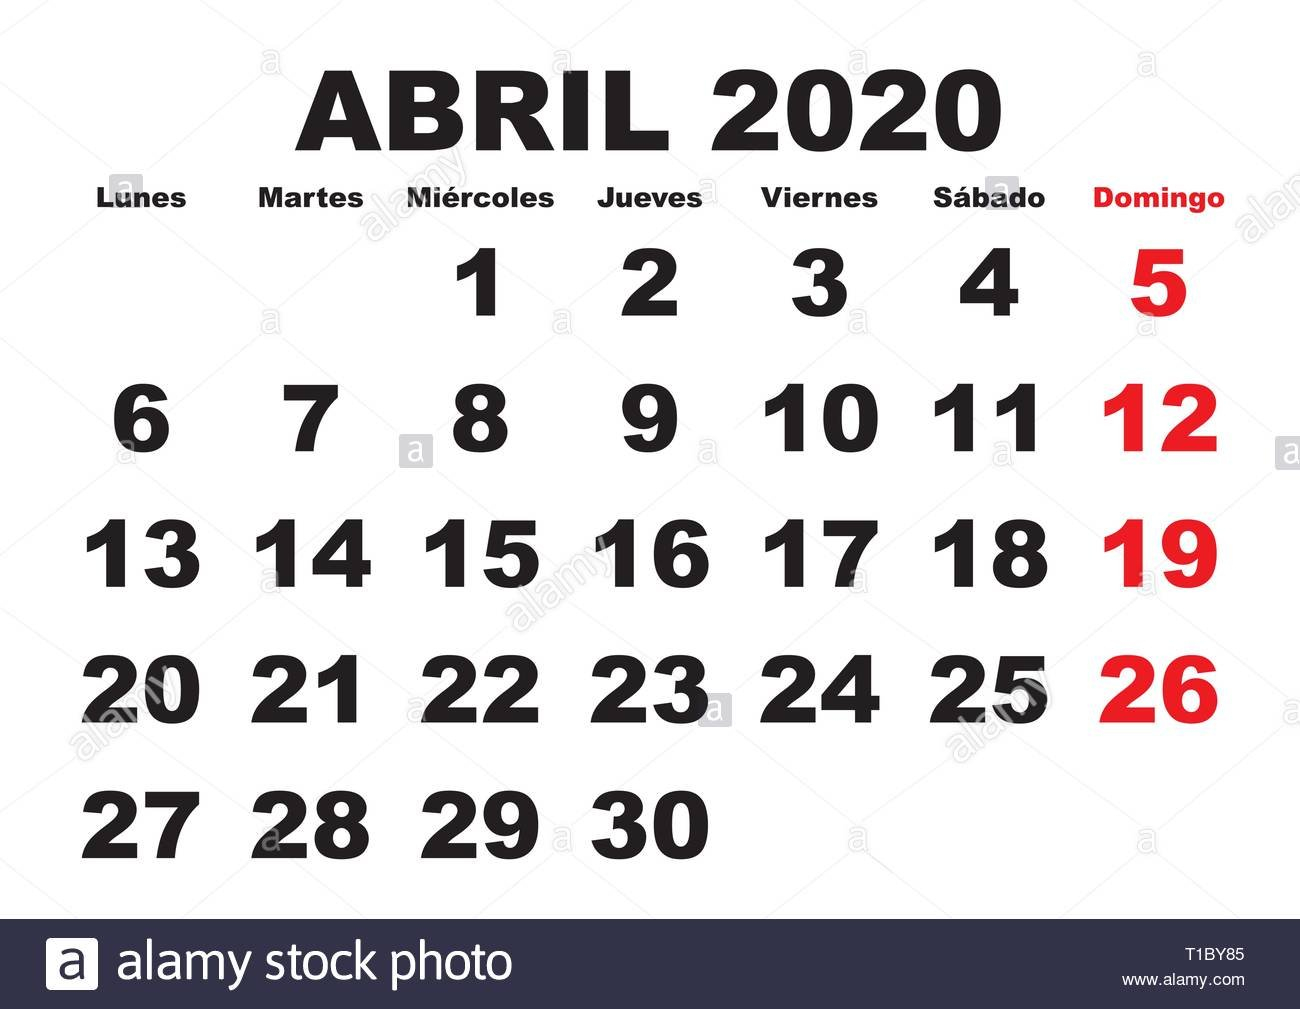 April Month In A Year 2020 Wall Calendar In Spanish. Abril April And May Calendar On 8 1/2 X 11 Sheet